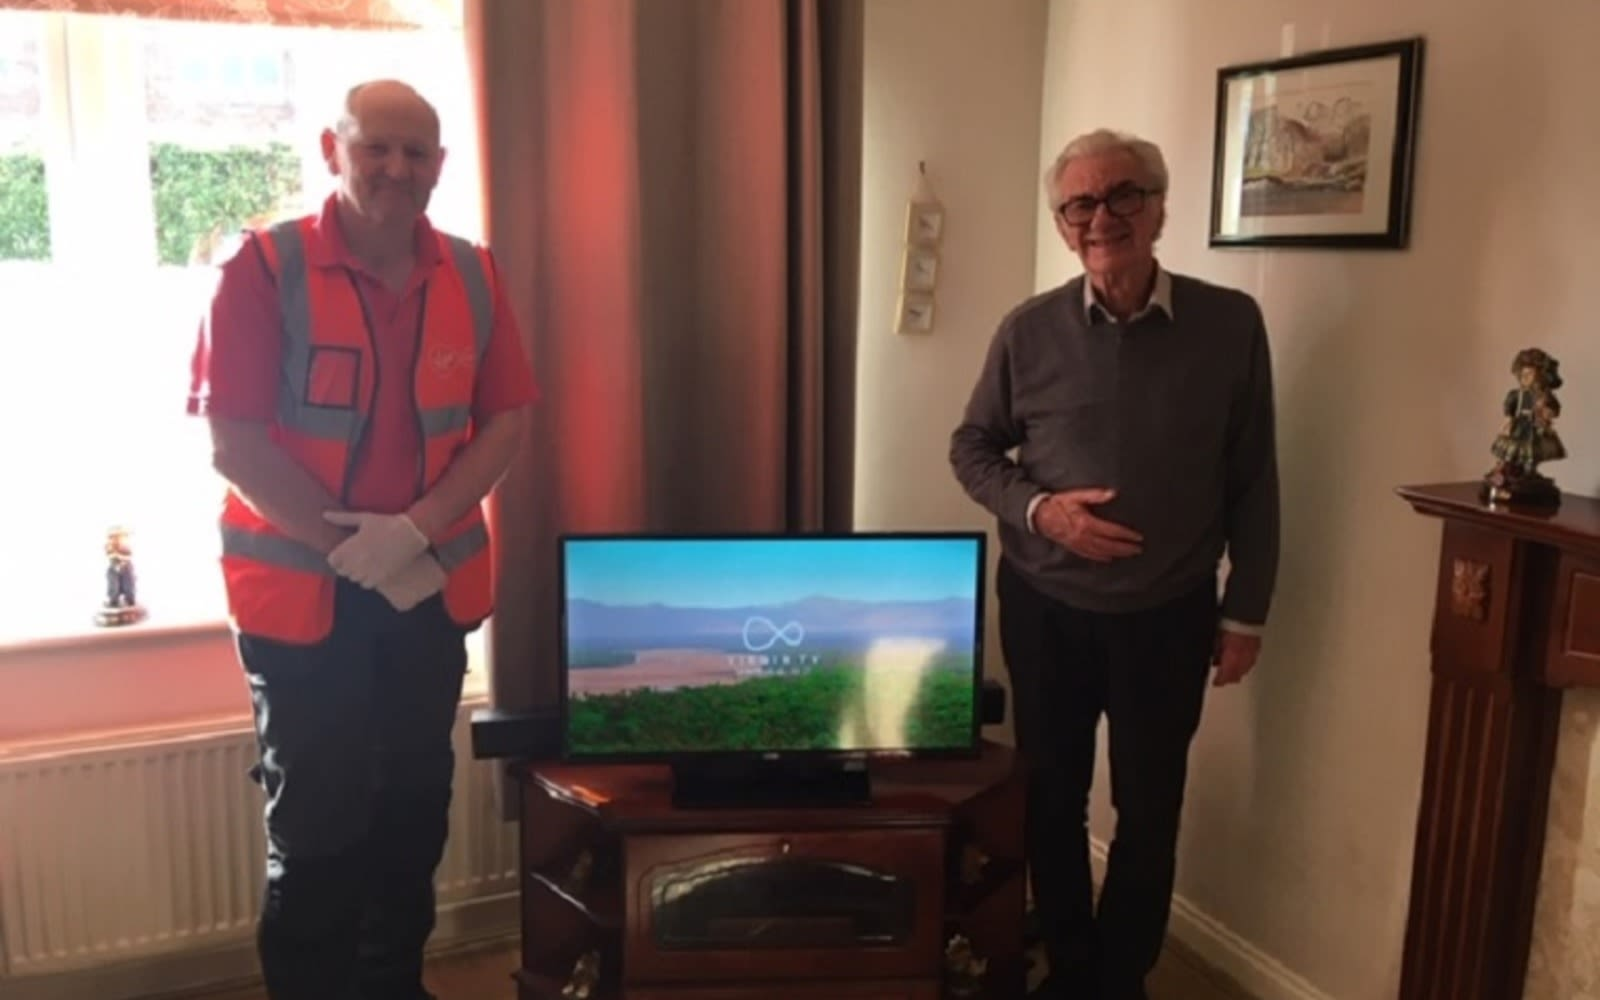 Virgin Media Employee meets a customer standing next to a television